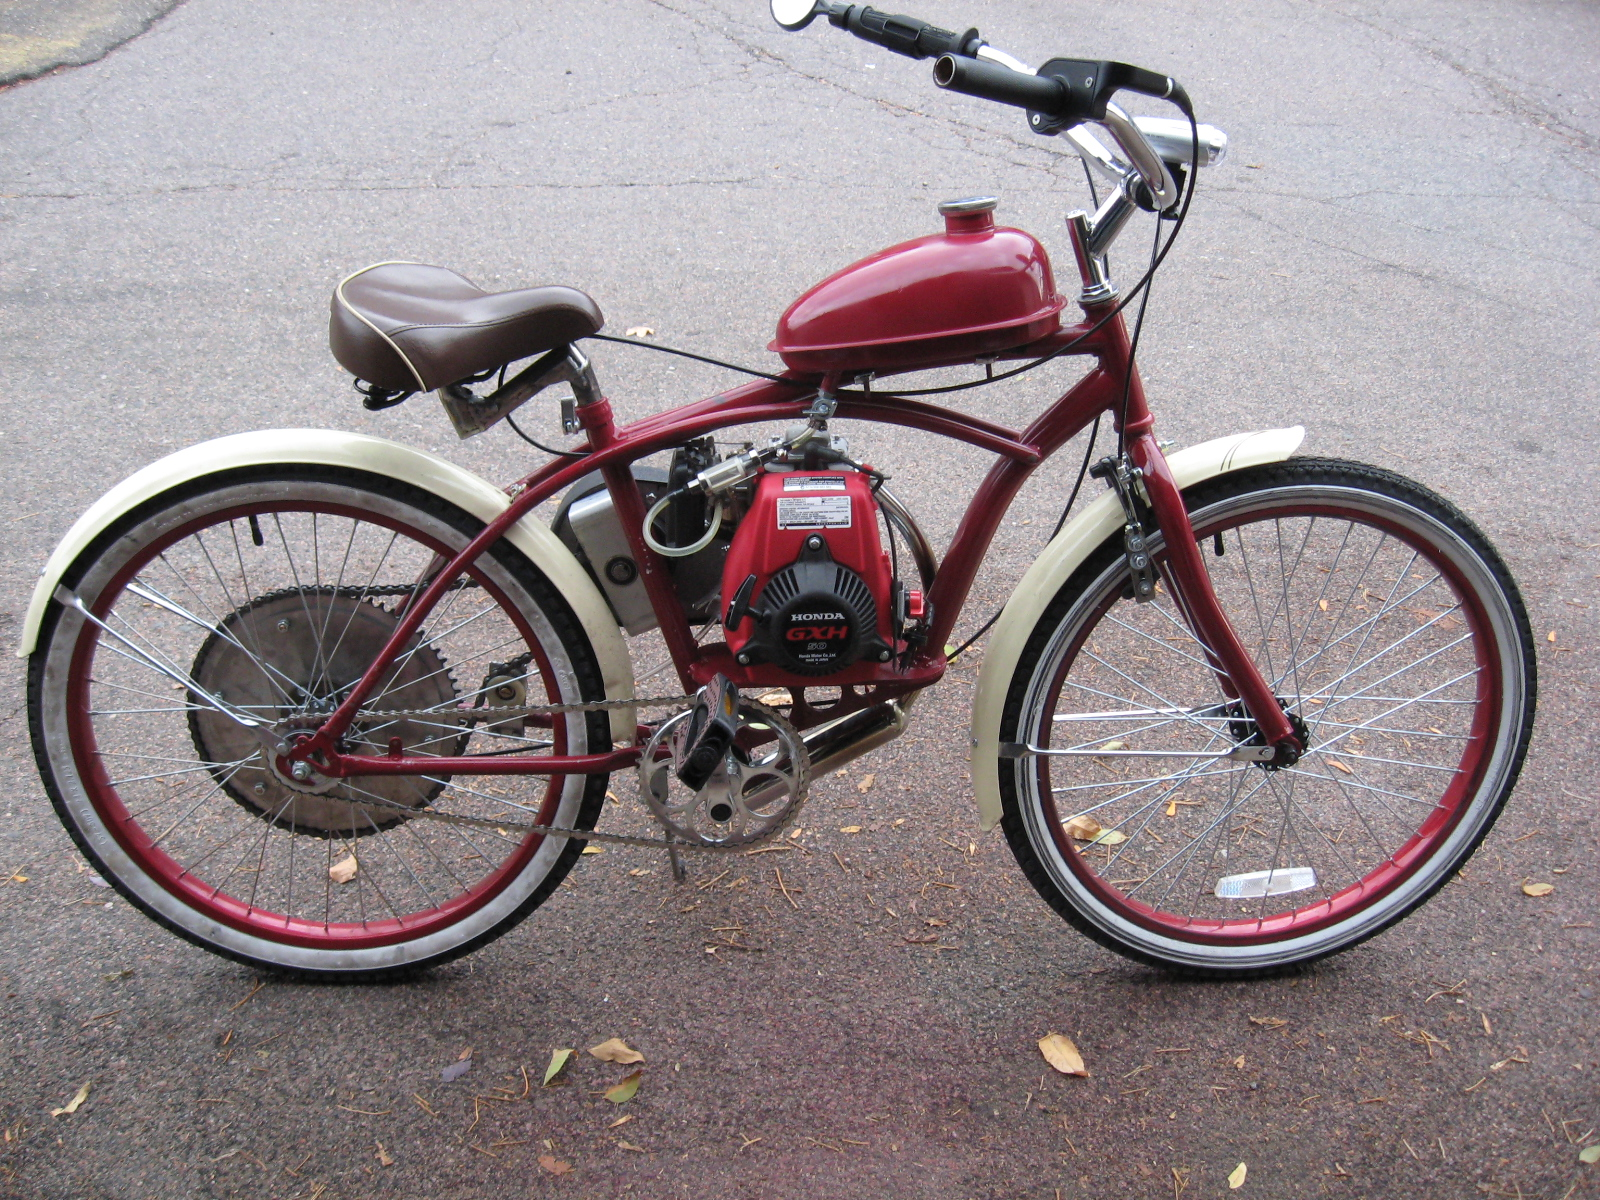 Picture of Motorized Bicycle DIY: the Hard Way